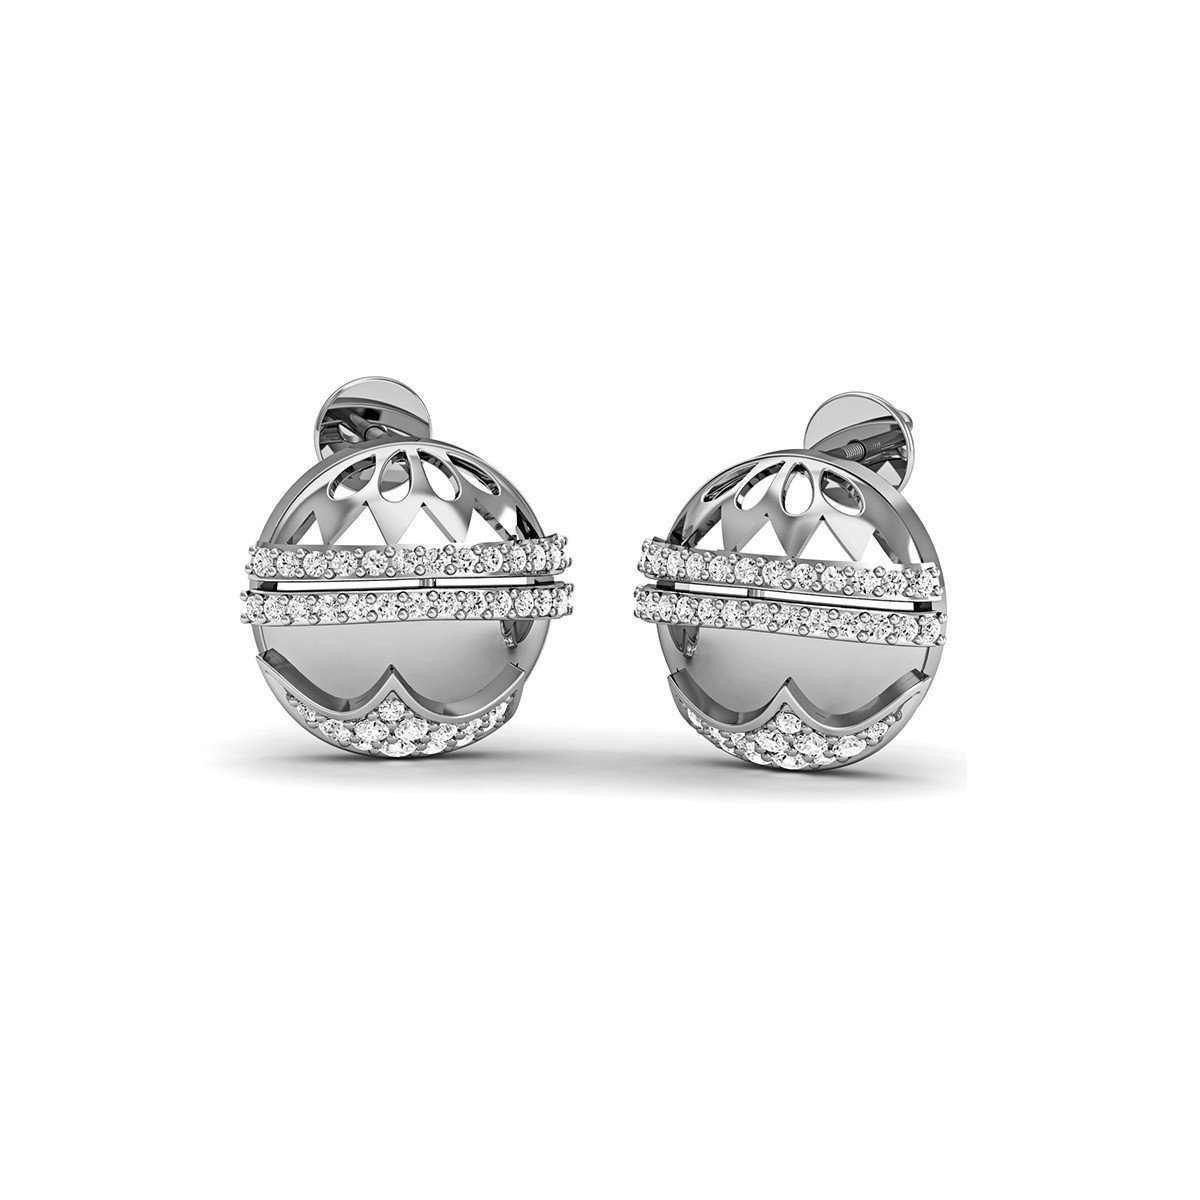 10kt White Gold Pave SI3 Diamond Earrings-Diamoire Jewels-JewelStreet US